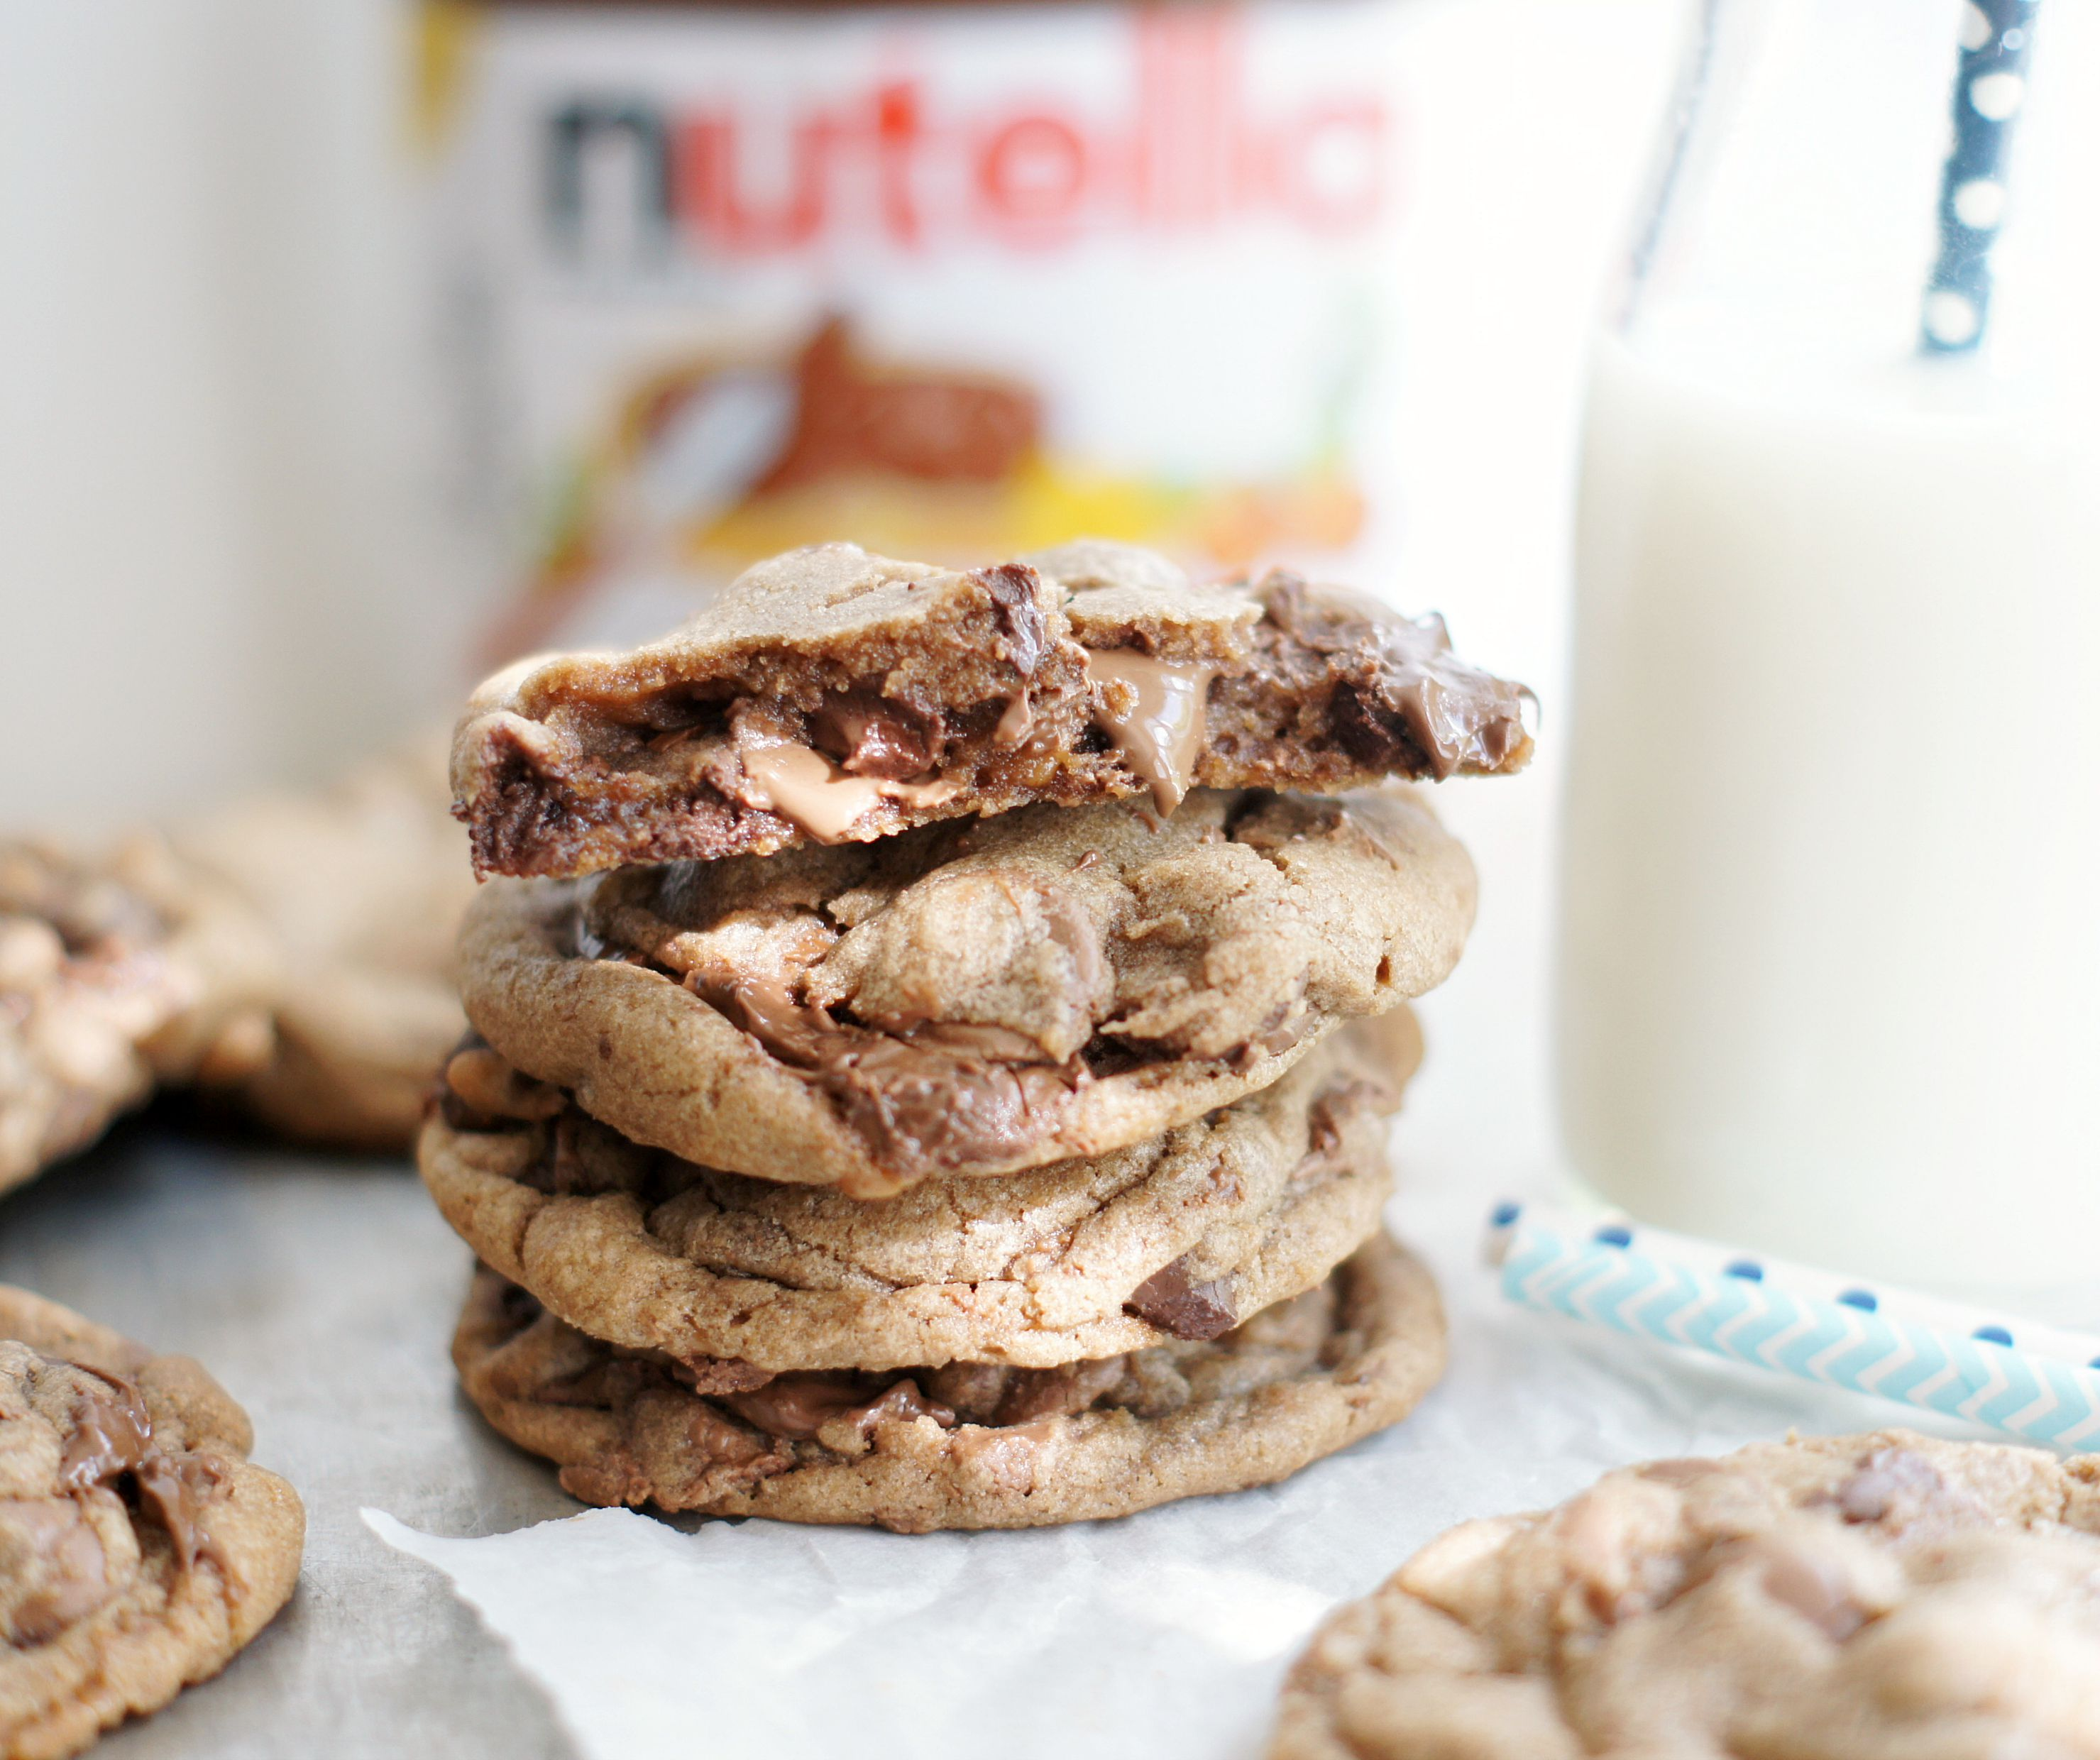 Chocolate Chip Toffee Nutella Cookies - 5BoysBaker